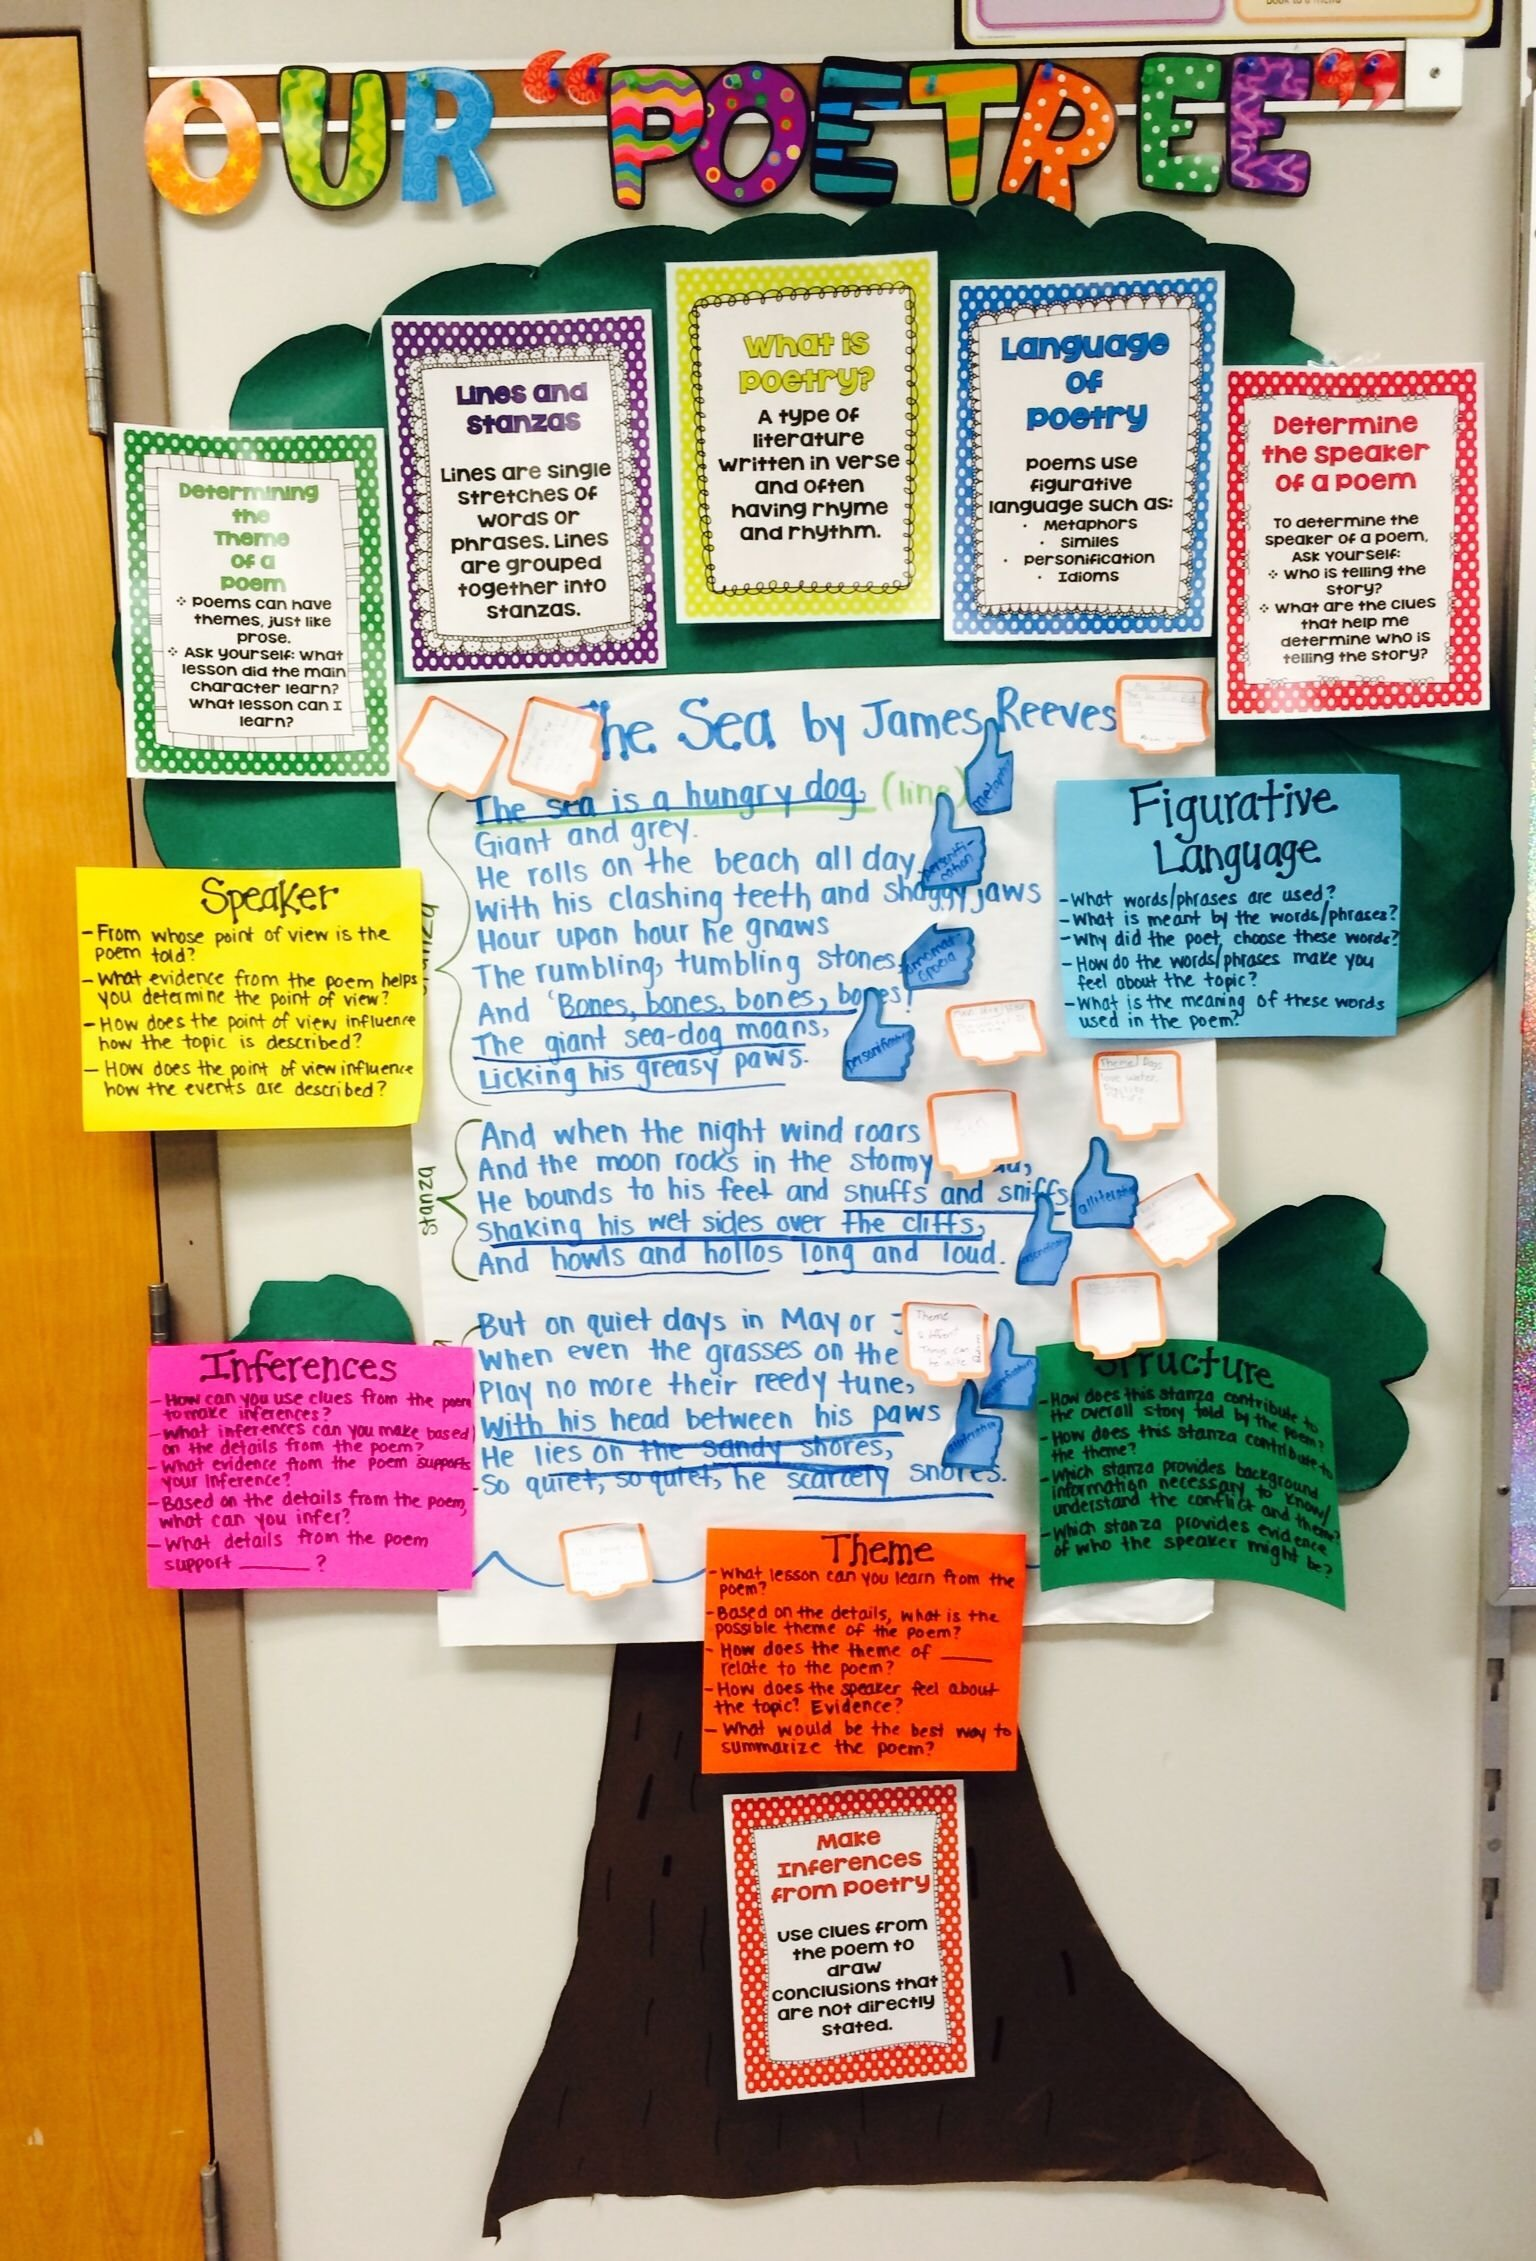 10 Stylish Common Core Bulletin Board Ideas fifth grade poetree interactive display using posters from the 2020